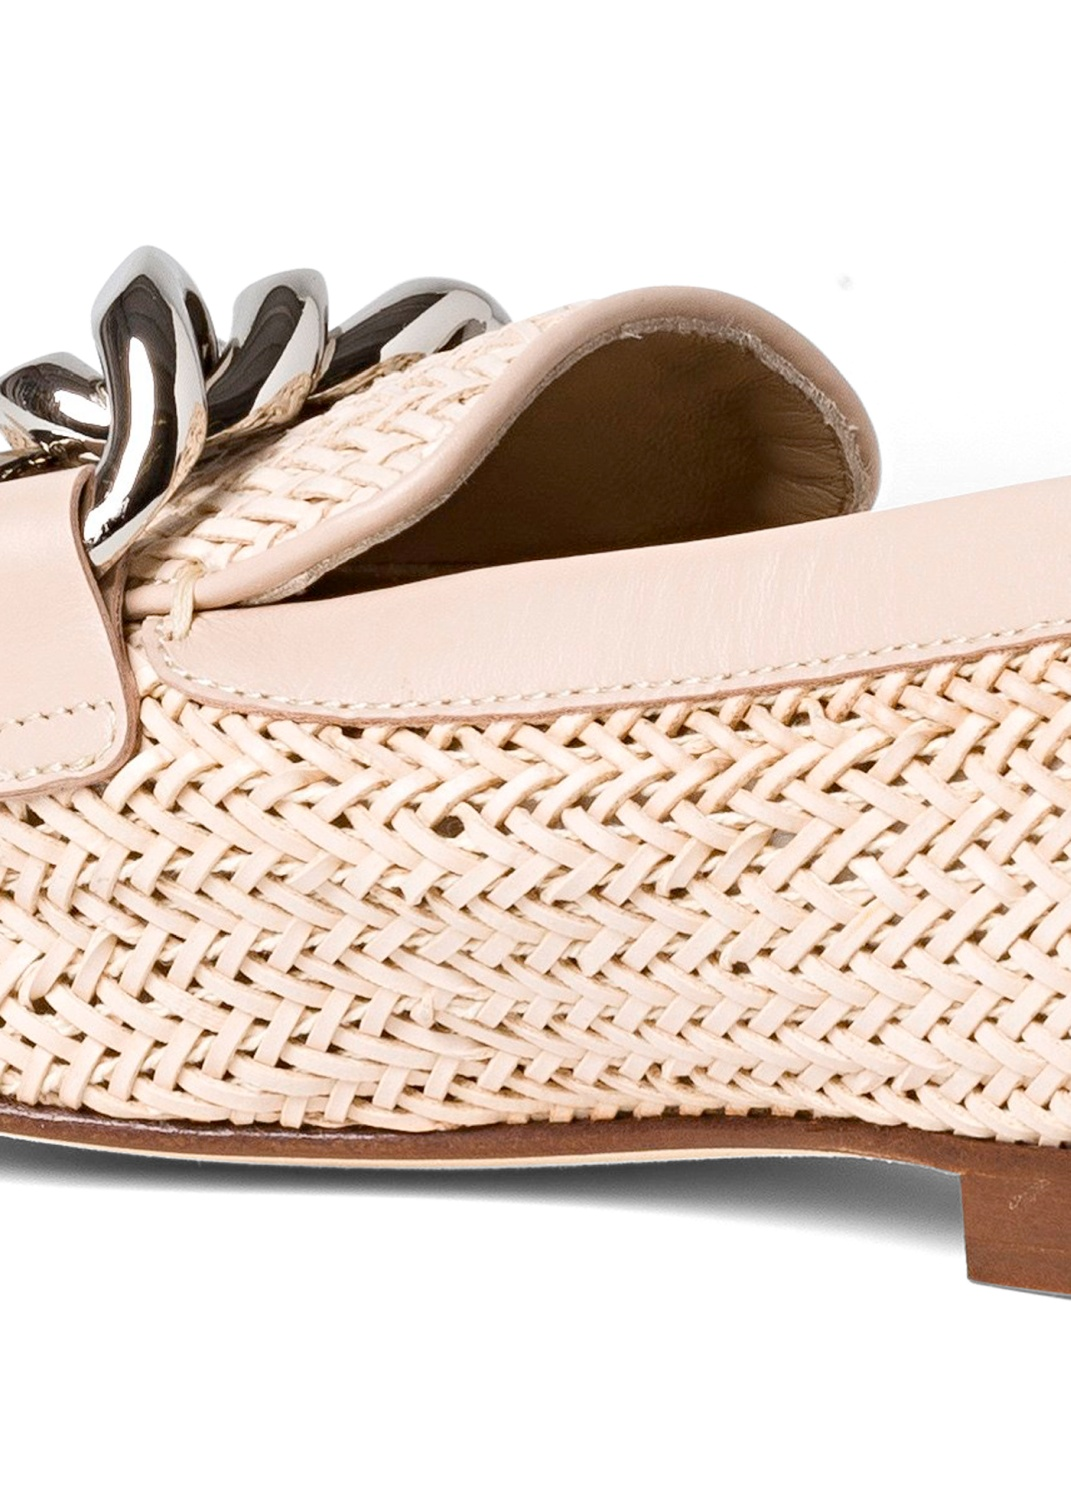 Woven Loafer Chain image number 3